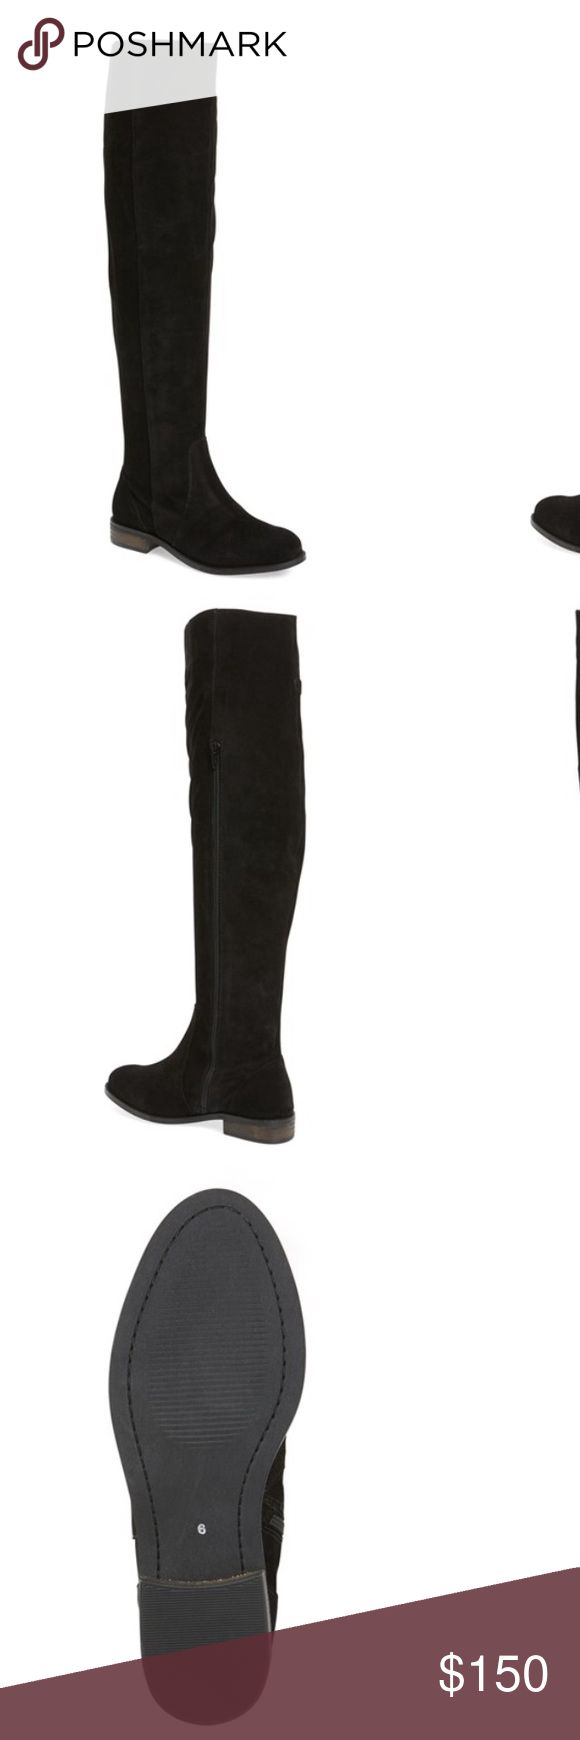 Seychelles boots Seychelles black NWT over the knee or you can scrunch down Seychelles Shoes Over the Knee Boots